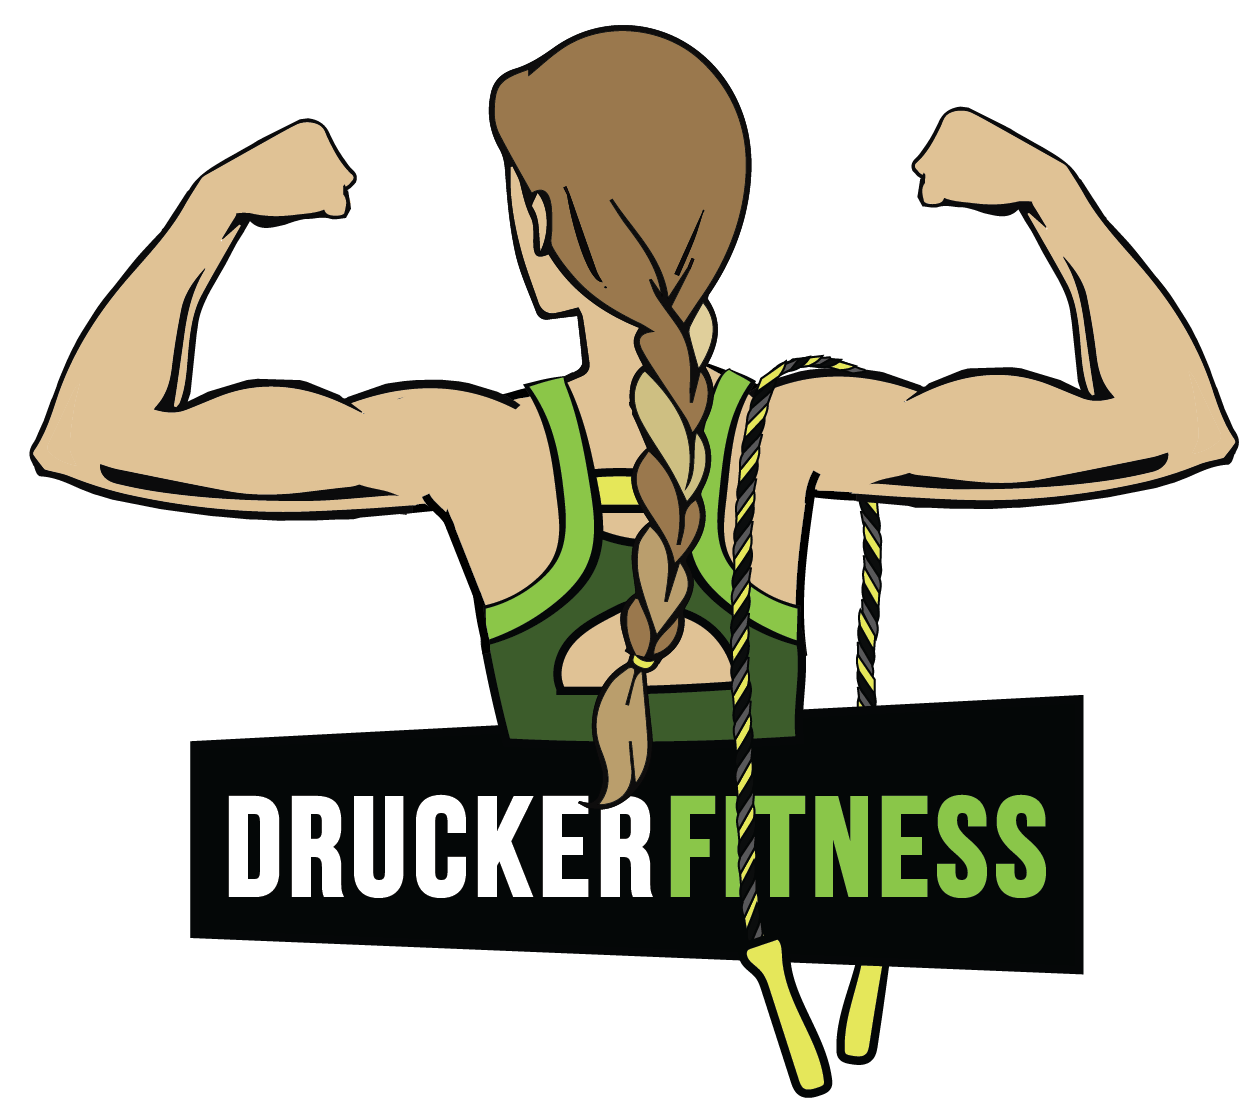 Elbow clipart strenth. About gabby drucker fitness